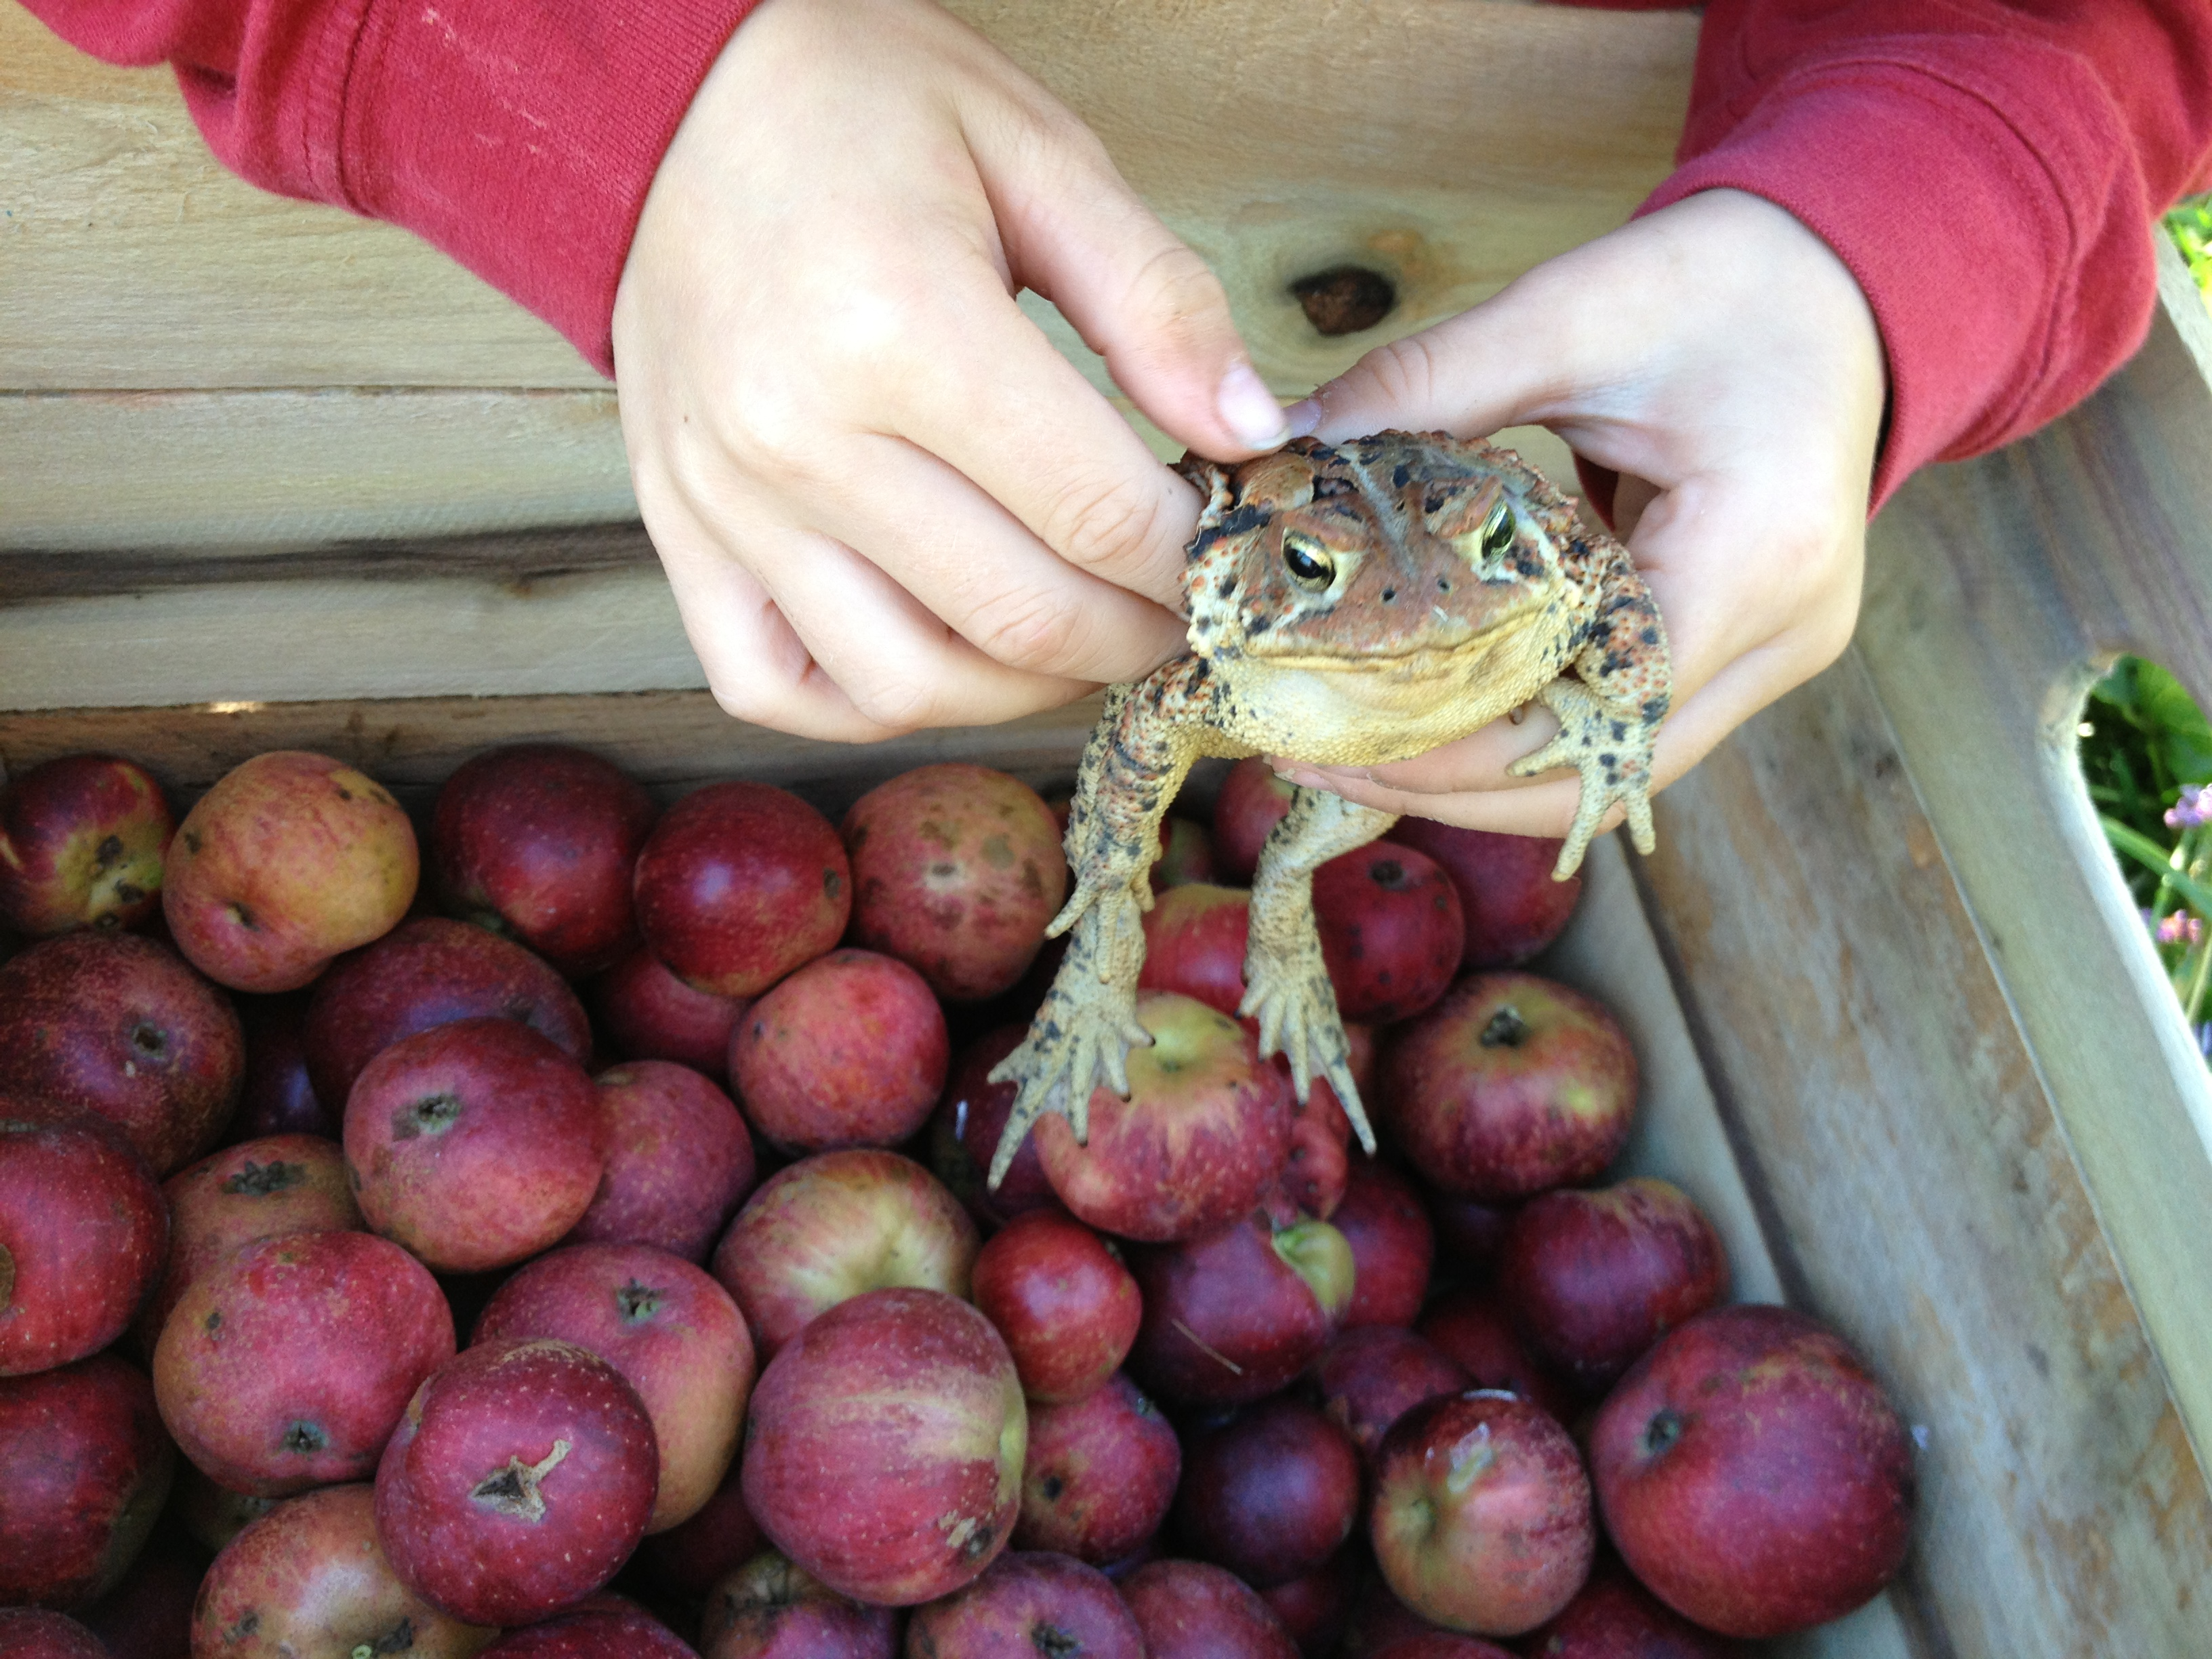 frog in apples